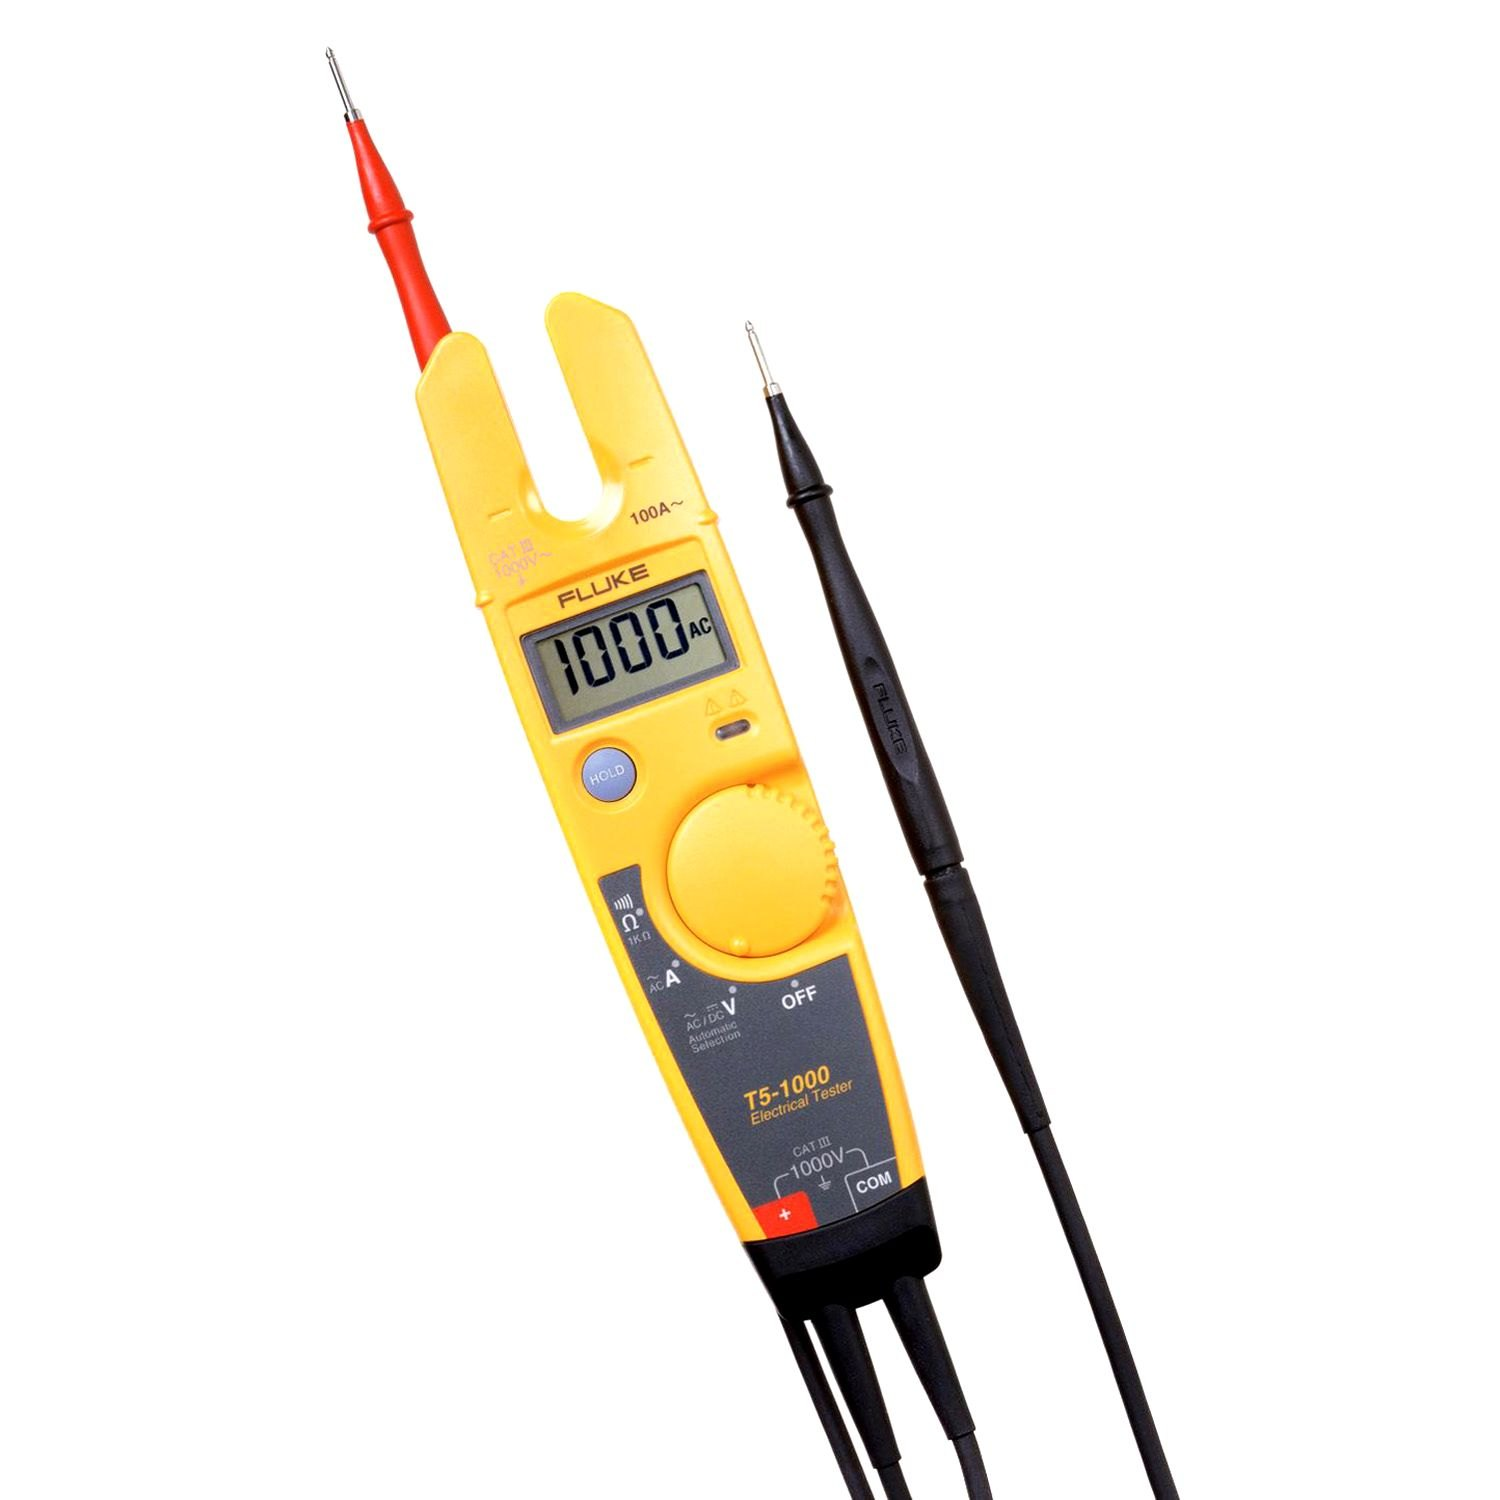 Electronics Tester Jobs : Fluke electronics t electrical tester kit